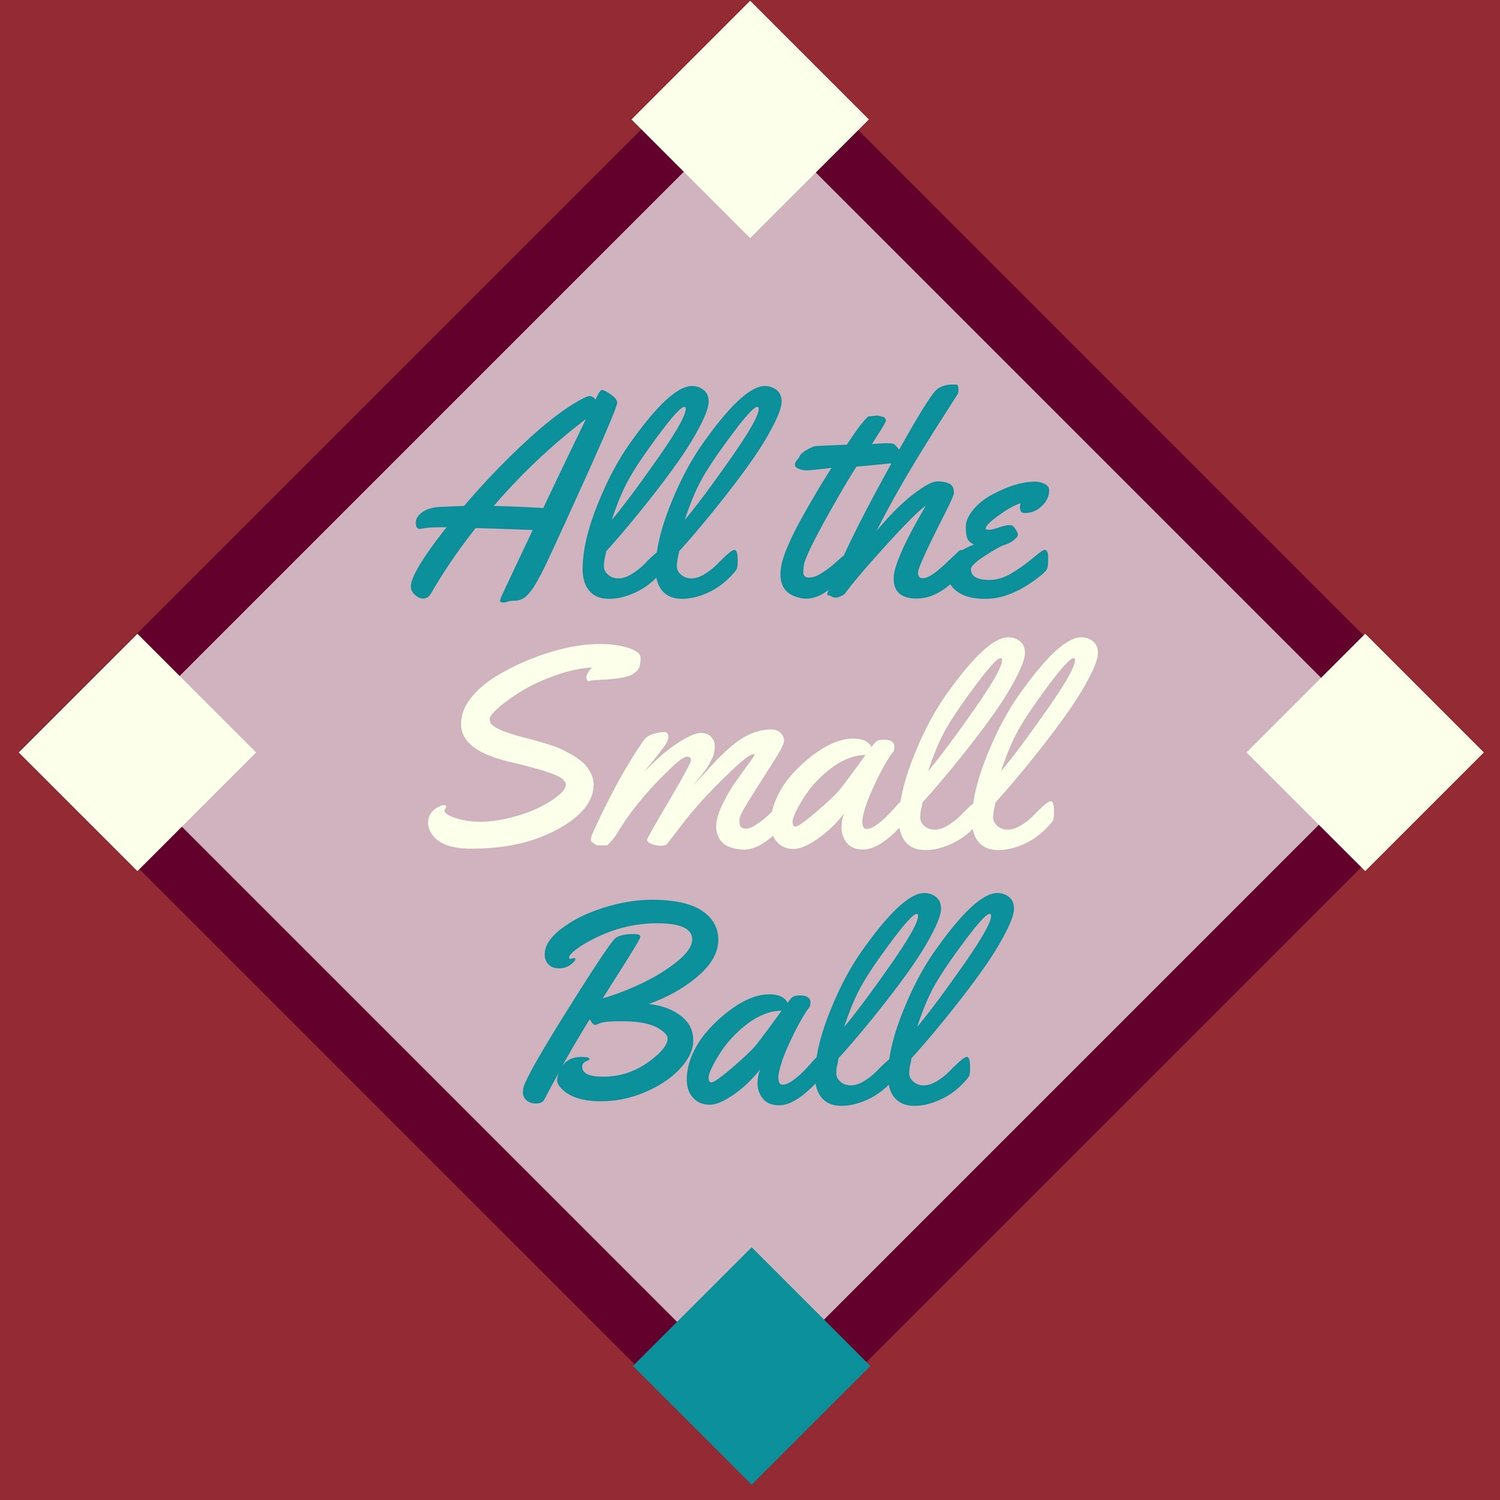 Episode 1: Welcome to All The Small Ball